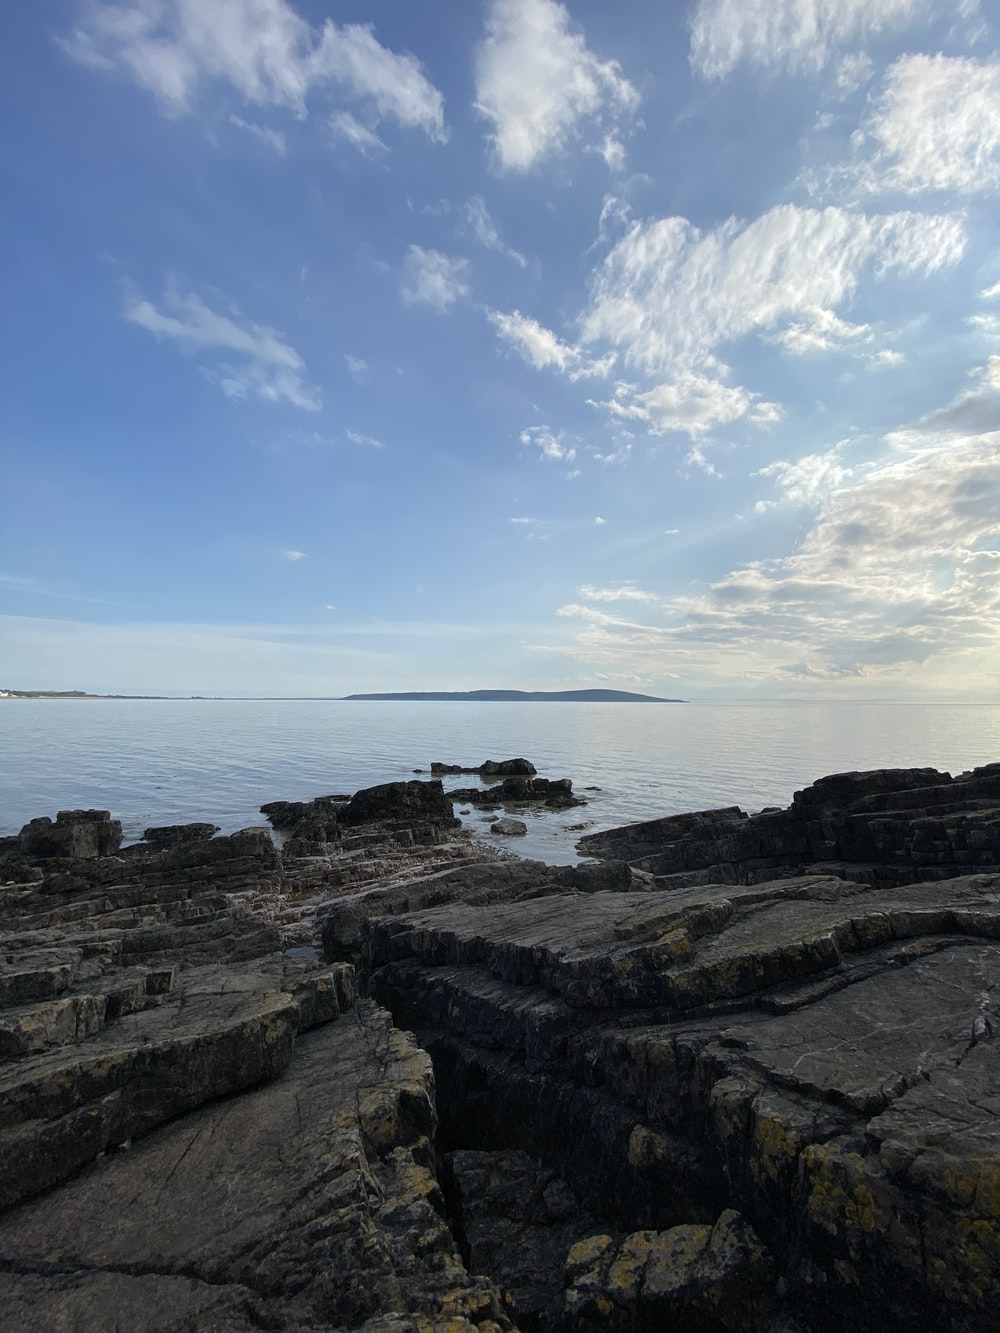 brown rocky shore under blue sky during daytime